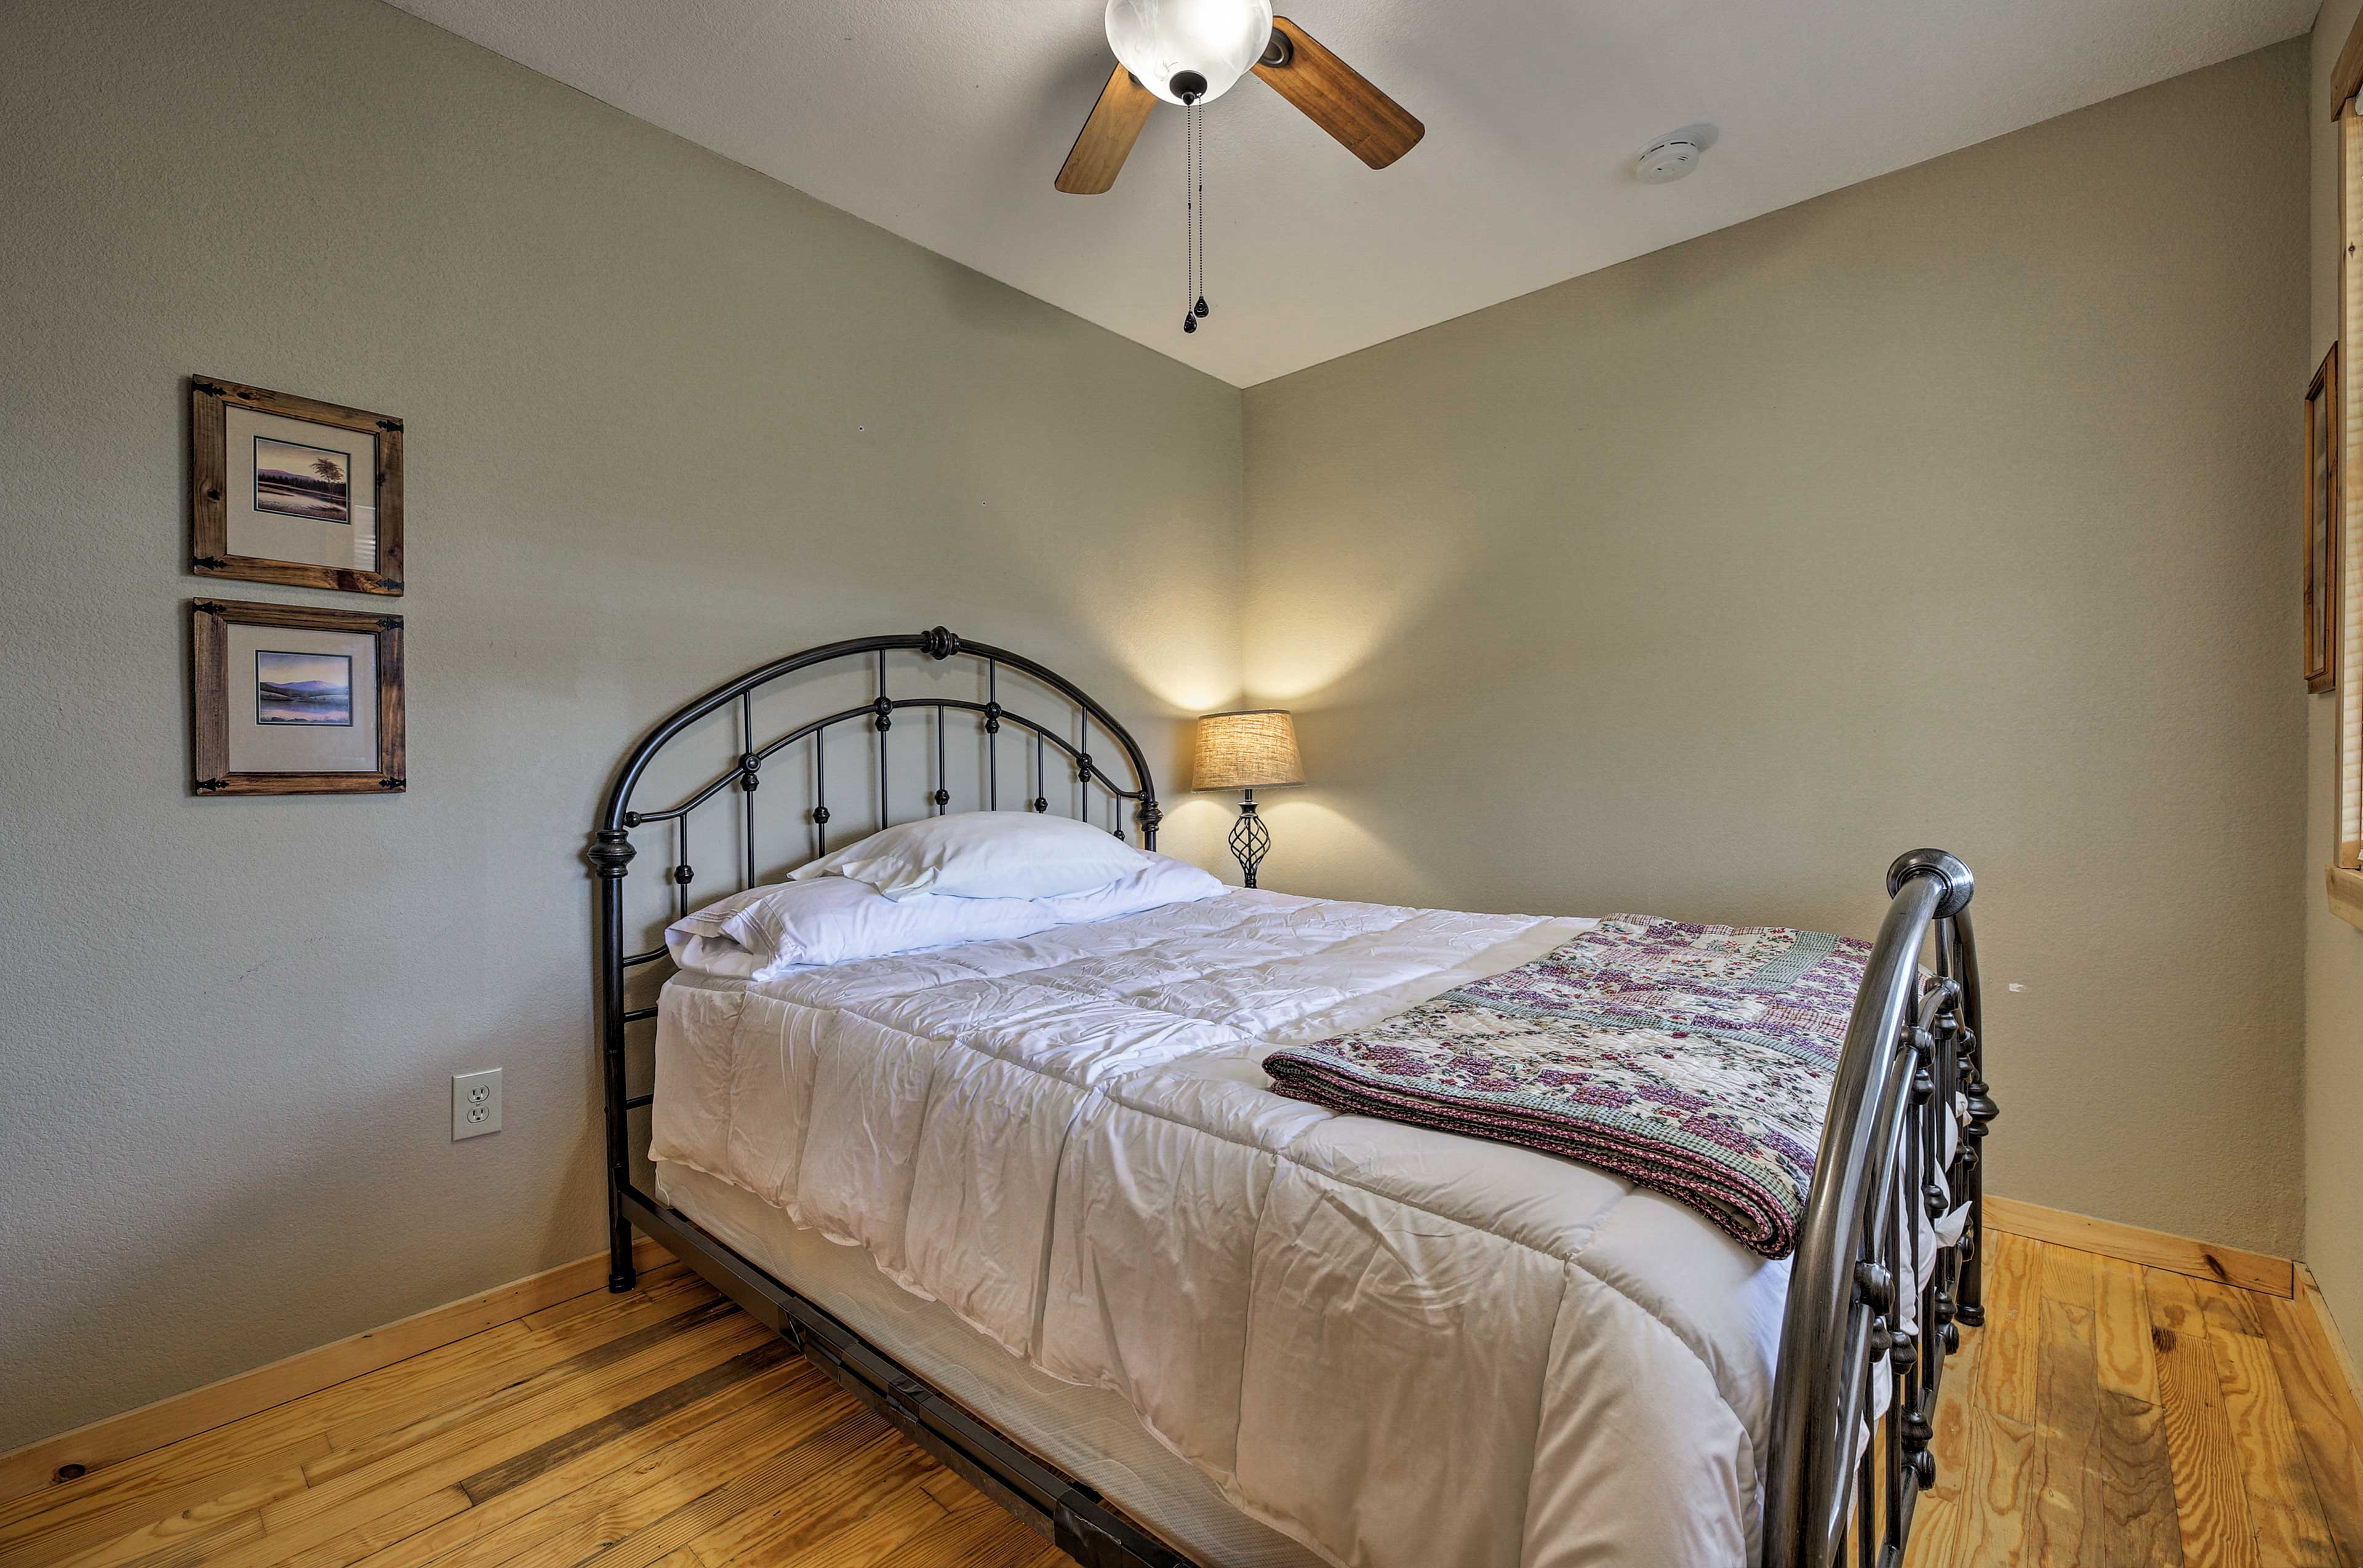 The second bedroom also hosts a queen bed.